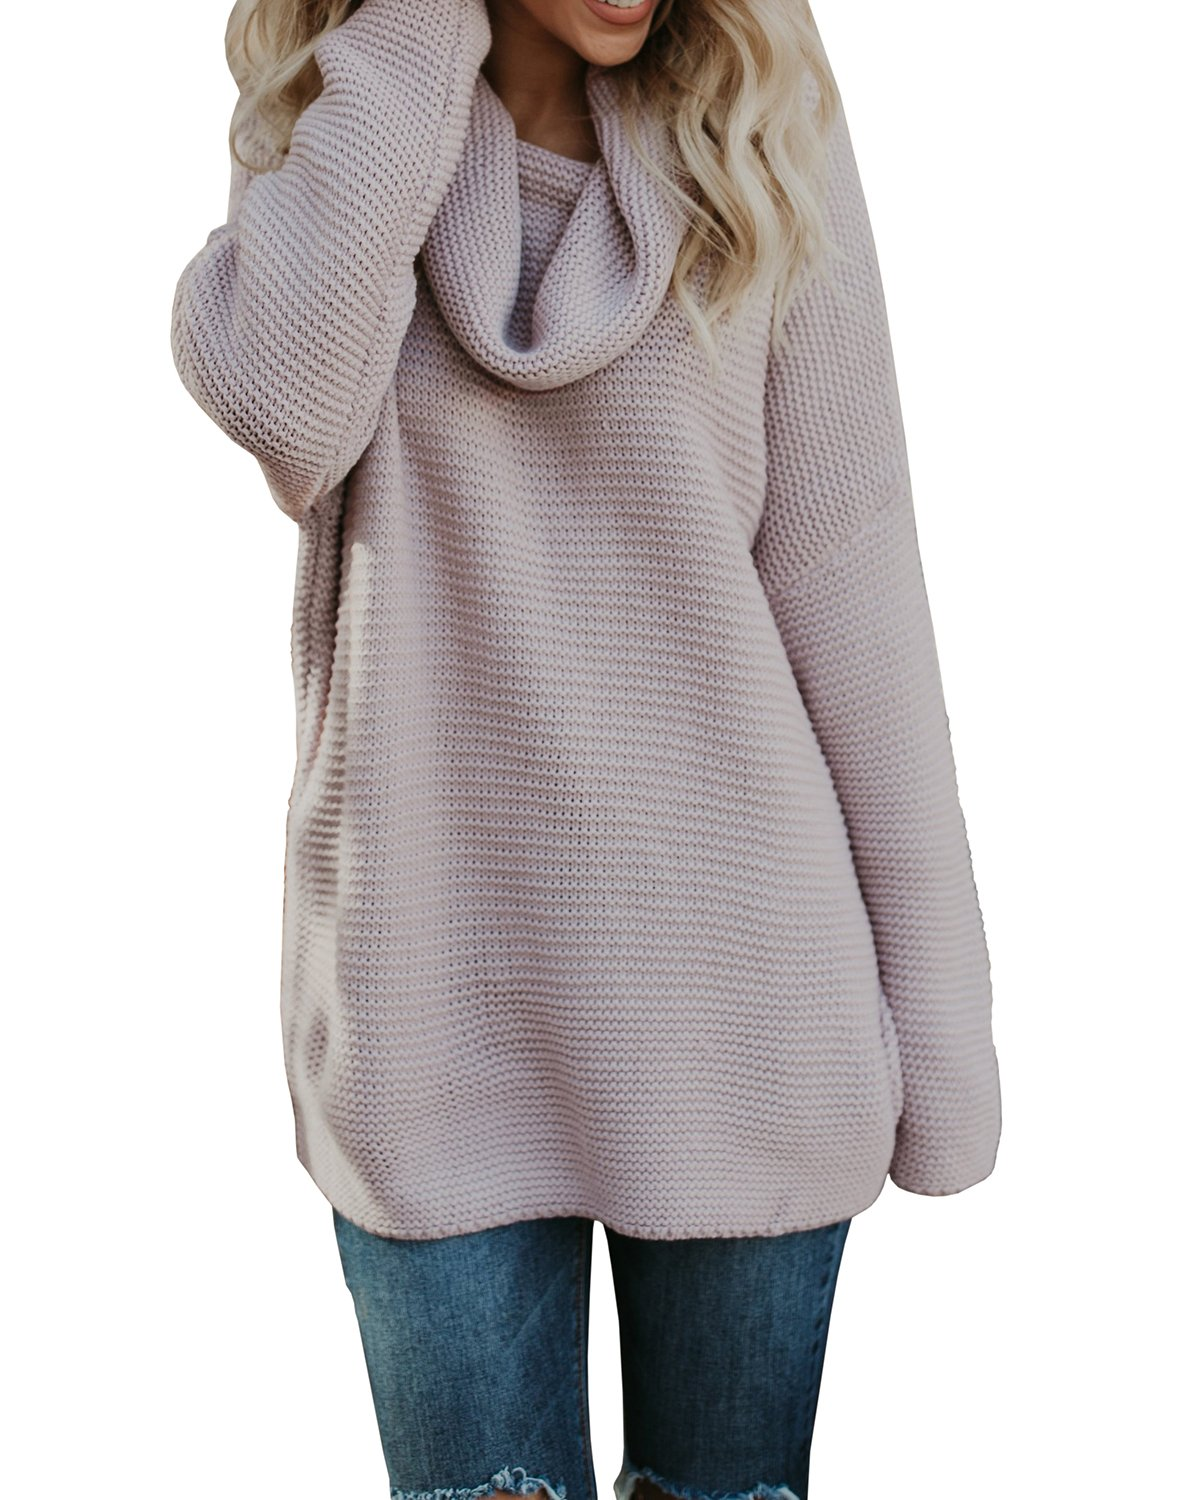 Pxmoda Women's Casual Long Sleeve Turtleneck Knit Sweater Chunky Oversized Pullover Jumper (XL, Pink)